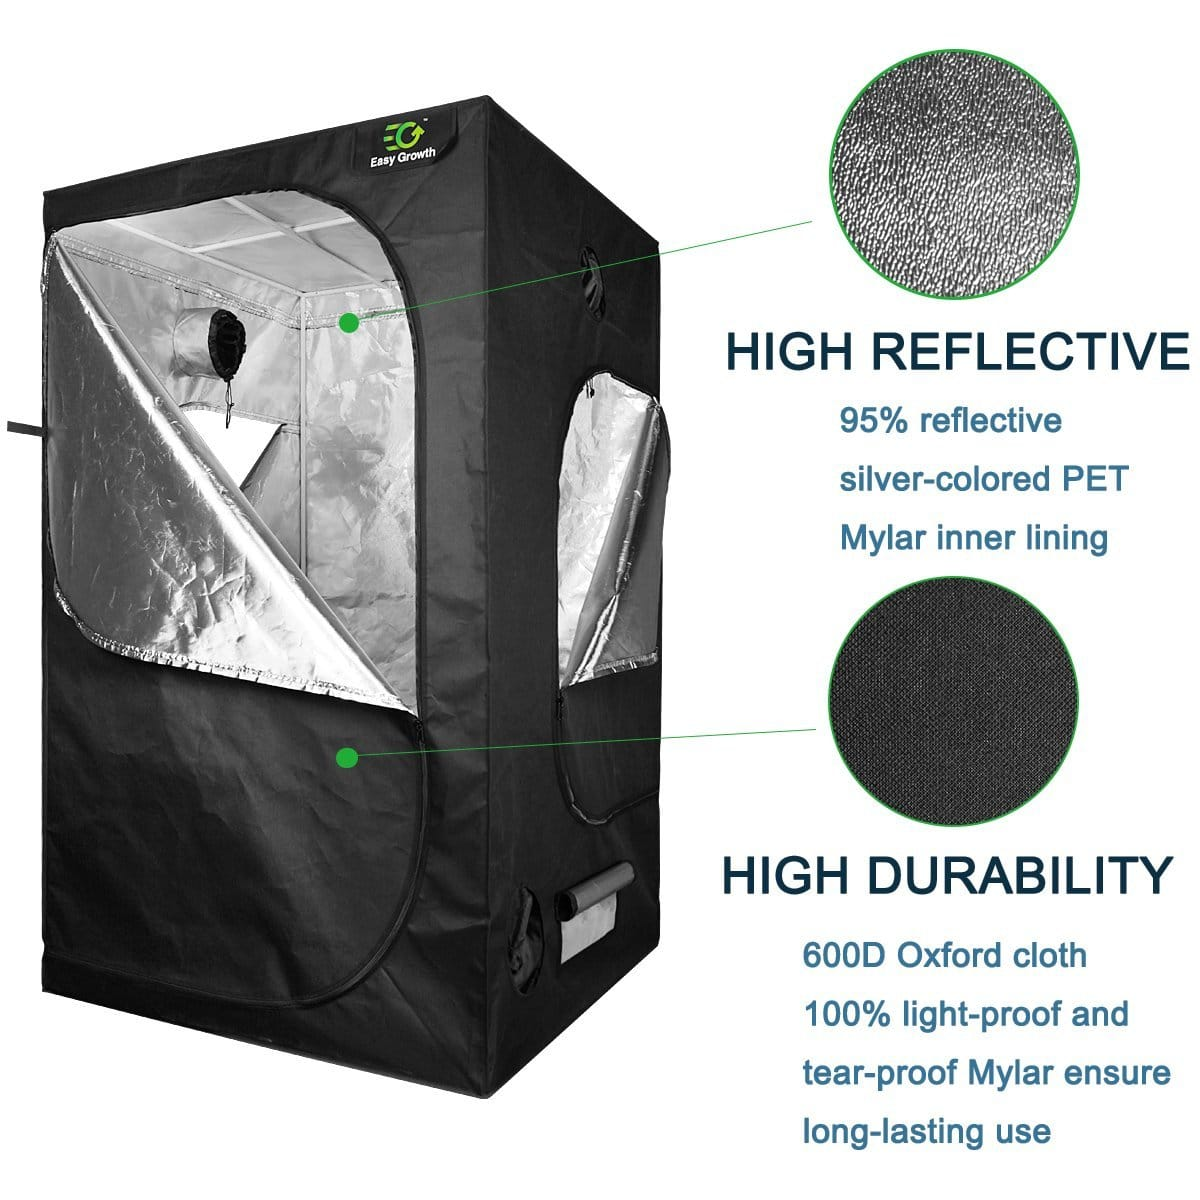 EasyGrowth Reflective Mylar Hydroponic Grow Tent